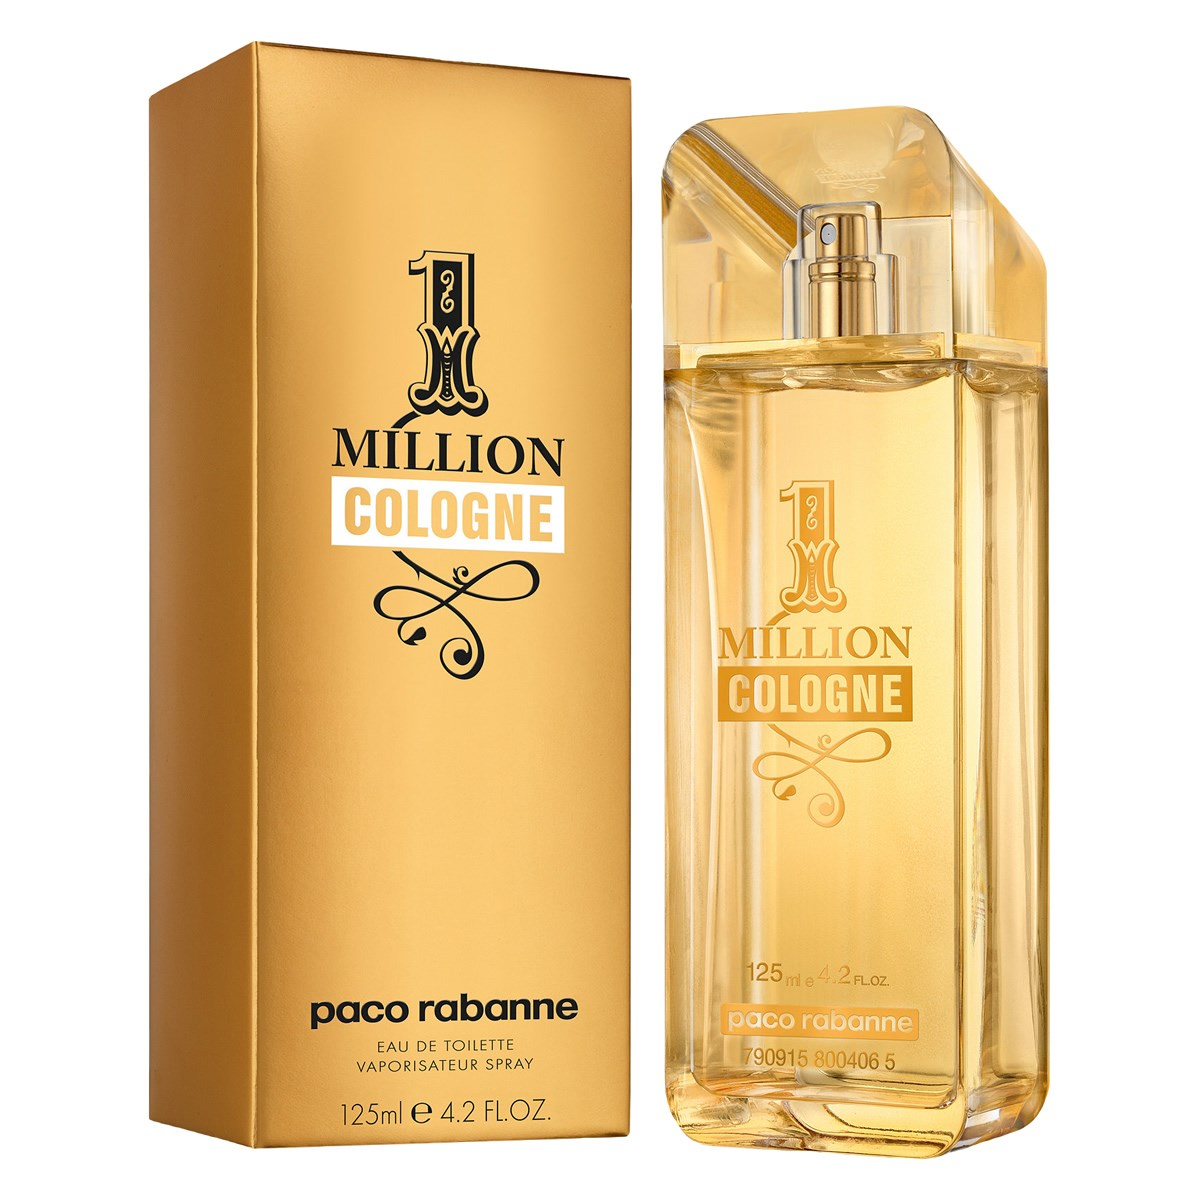 Paco Rabanne 1 Million Cologne Eau de Toilette Spray